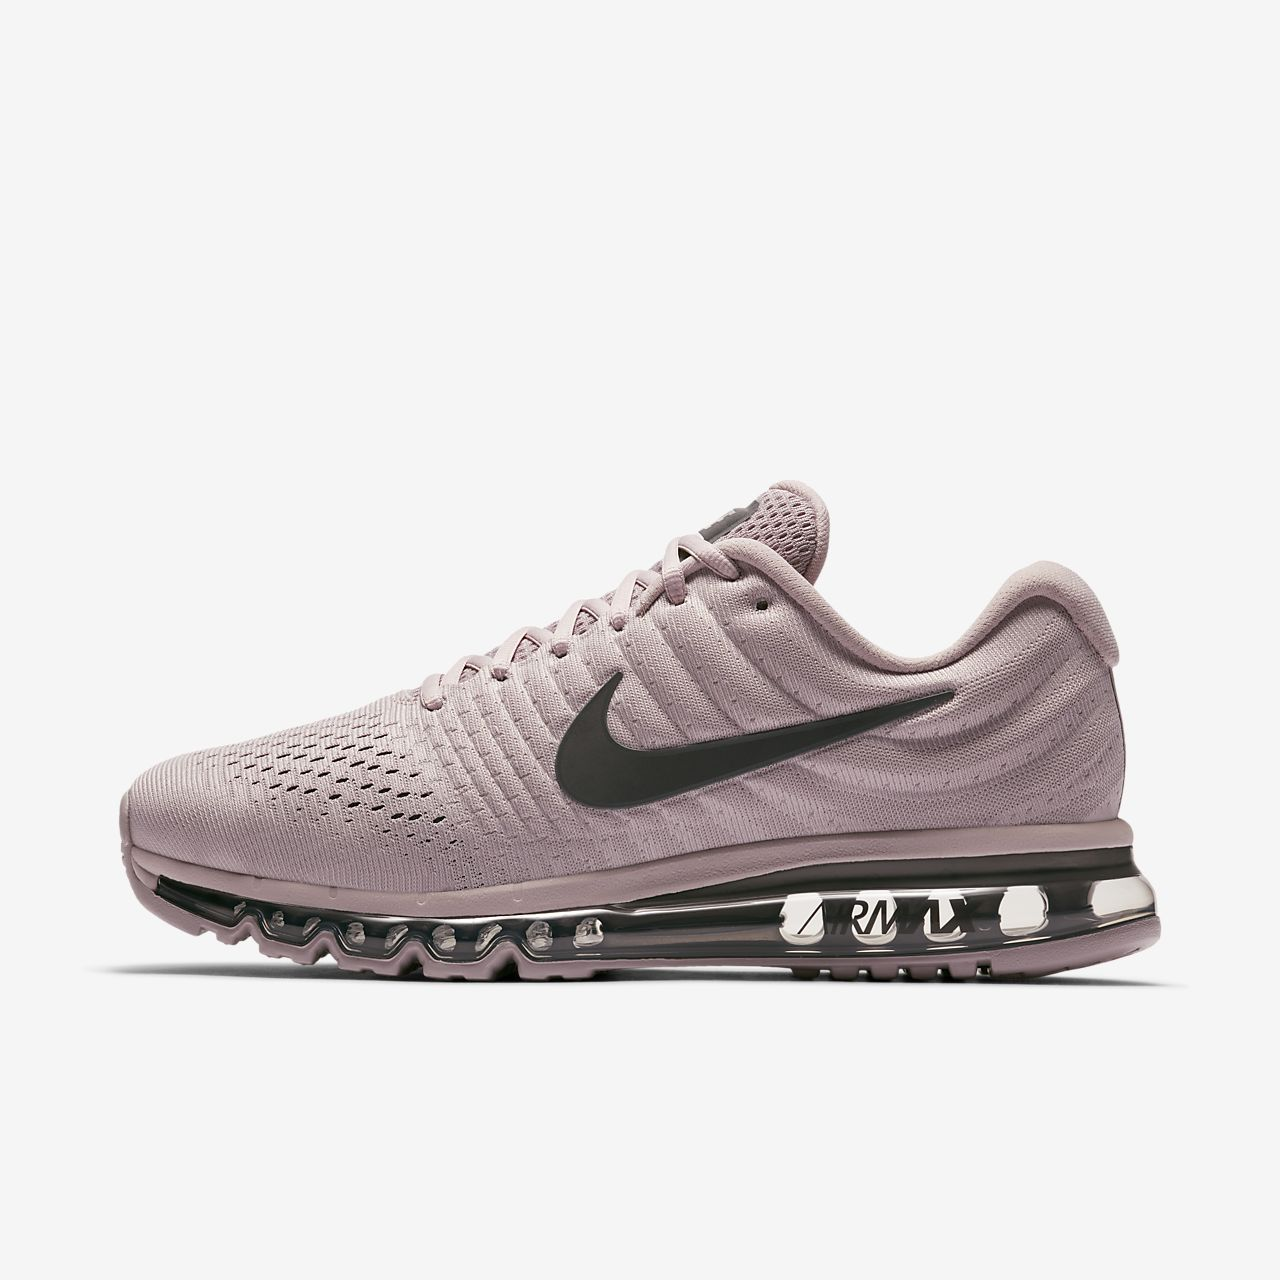 Chaussure Nike Air Max 2017 SE pour Homme